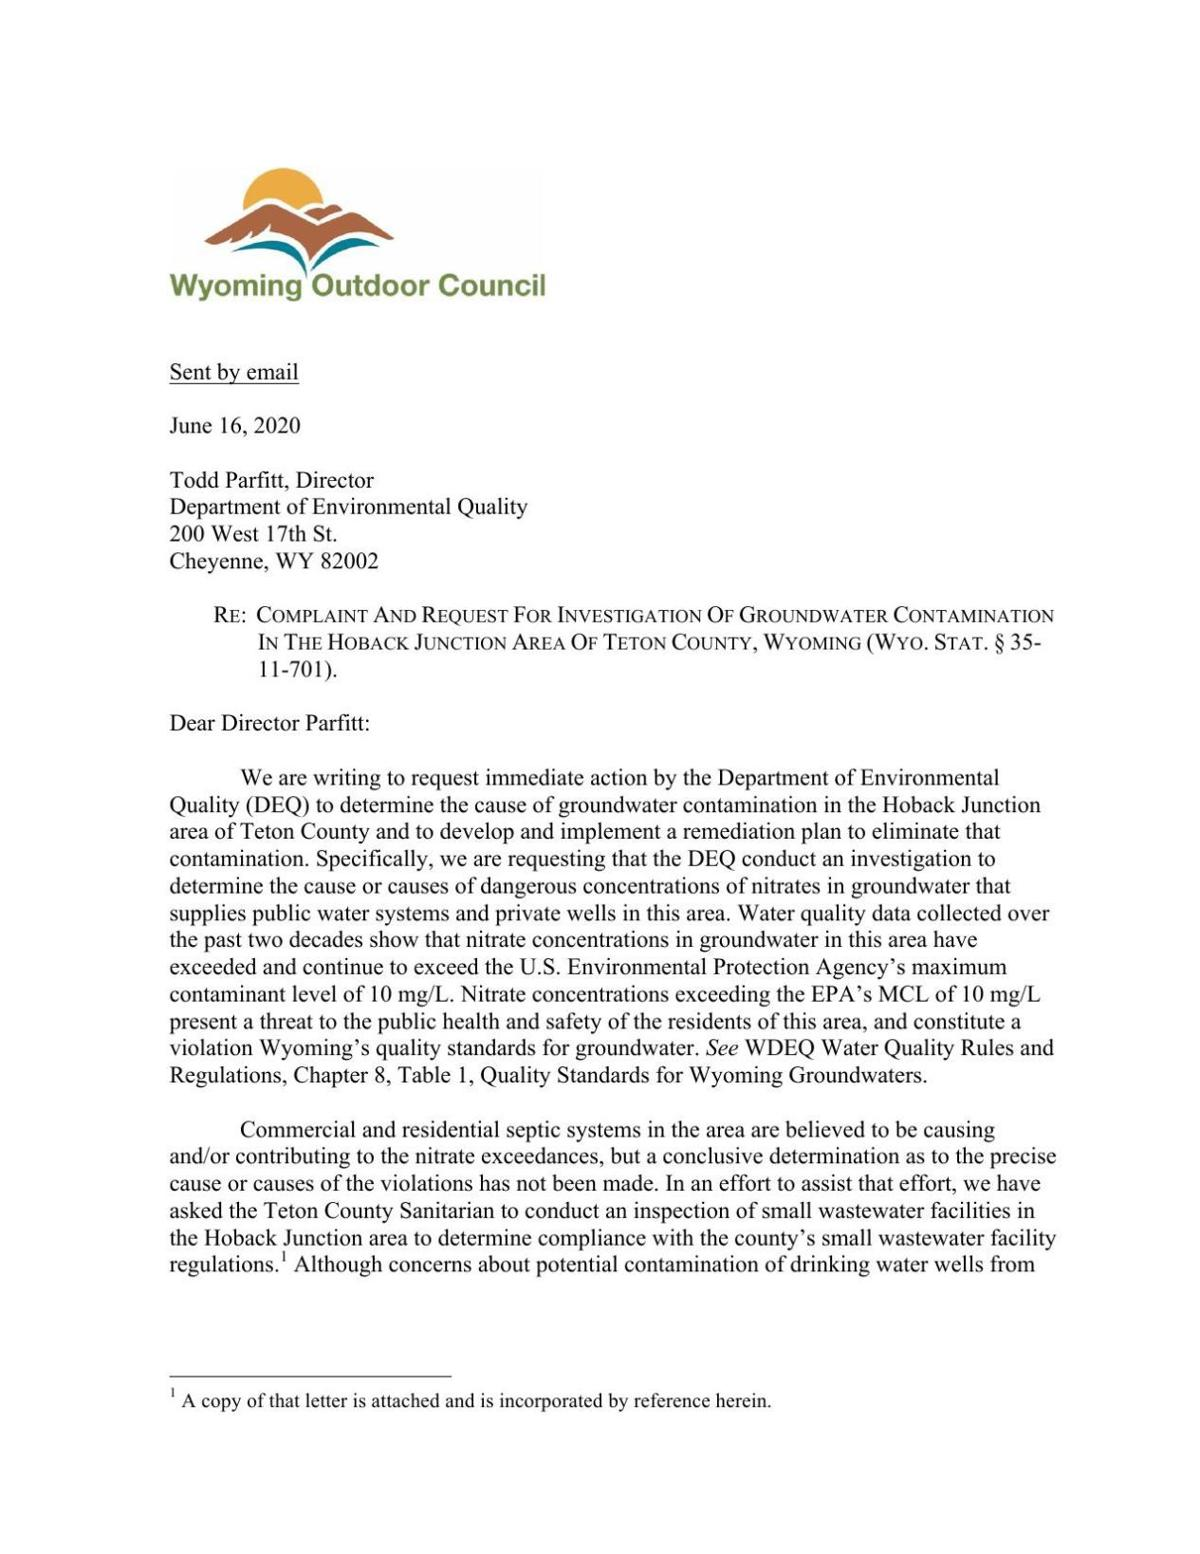 Request for DEQ Investigation of Hoback Junction Groundwater Contamination